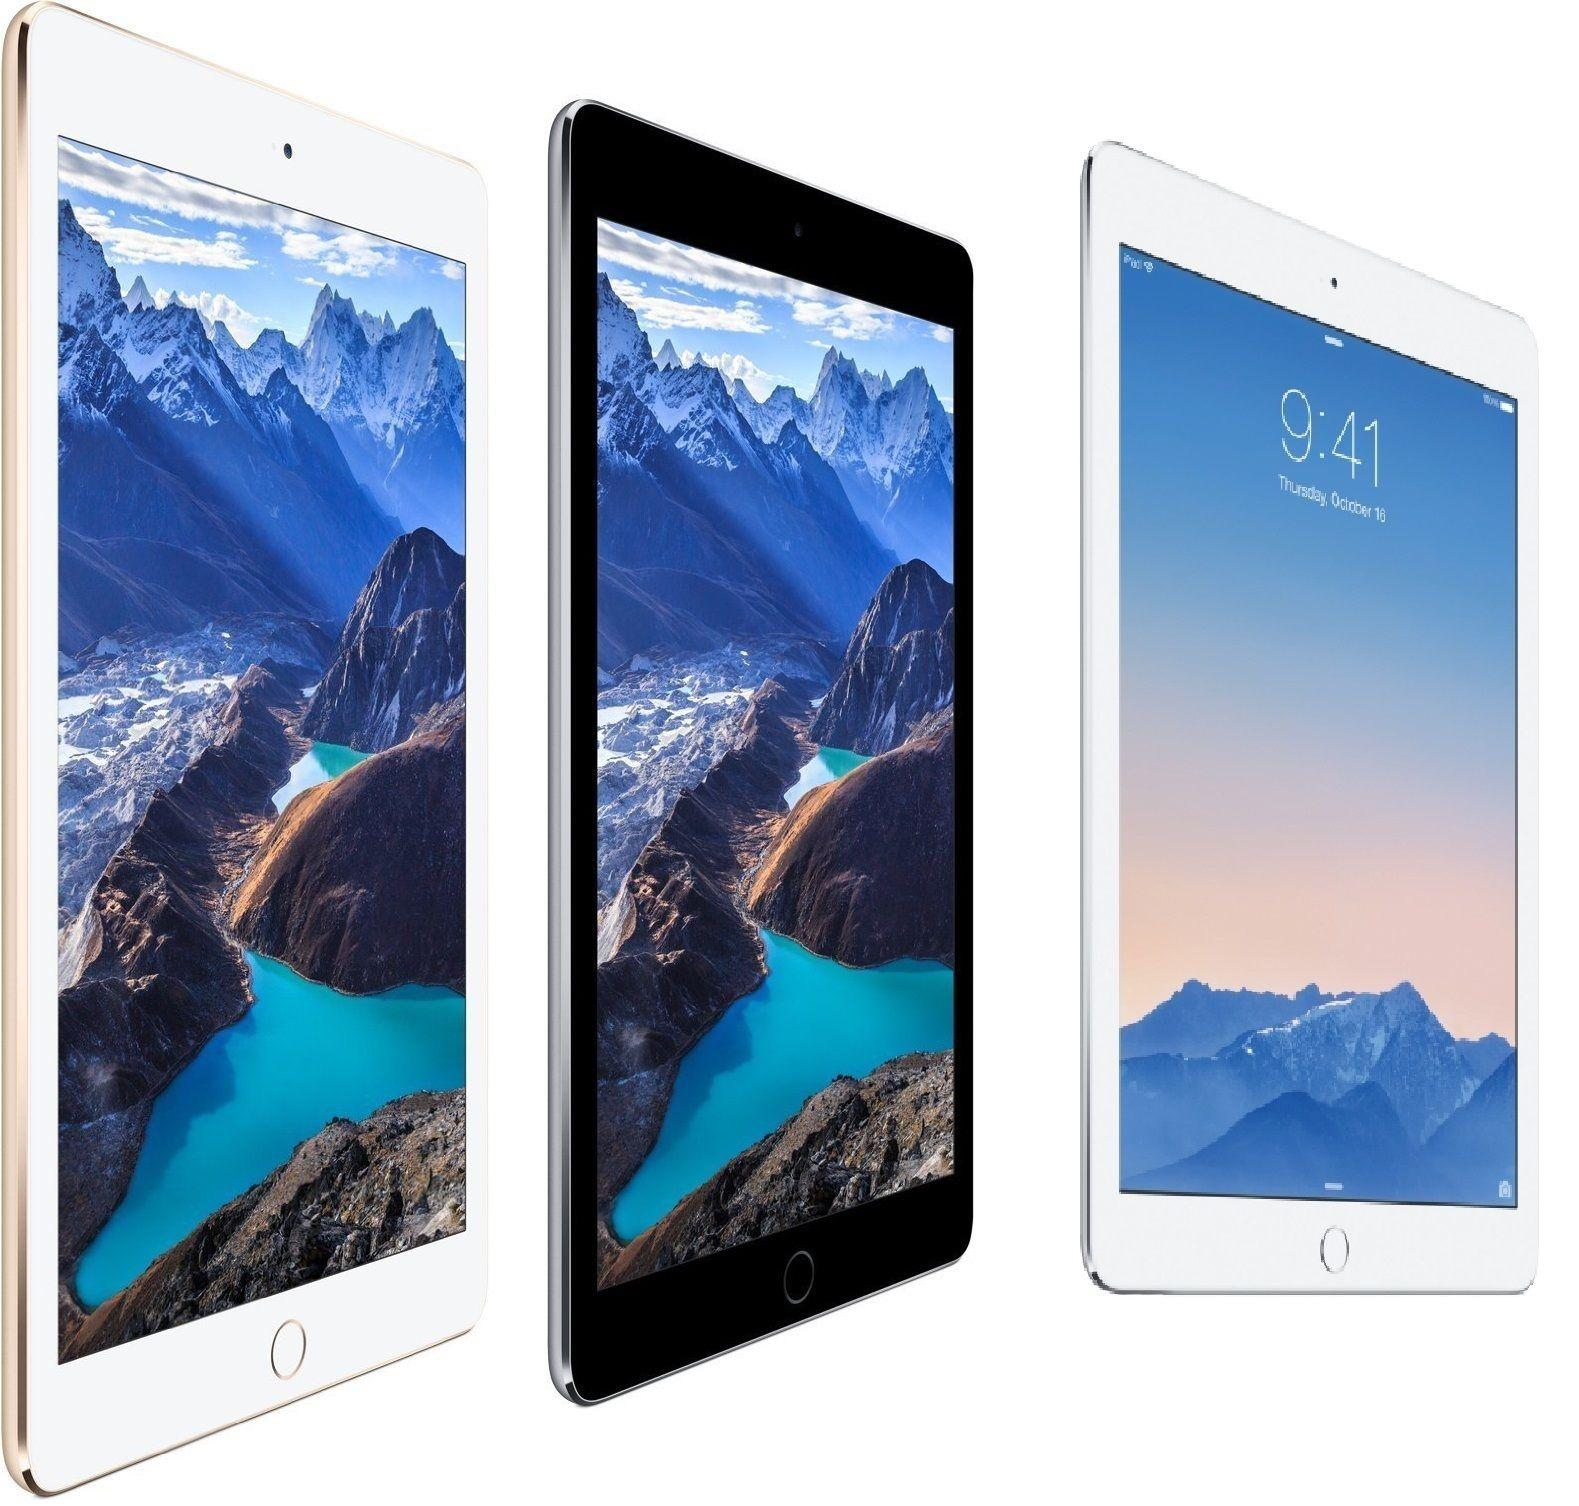 Up to $175 OFF iPad Air 2 Black Friday Sale @ Sam's Club